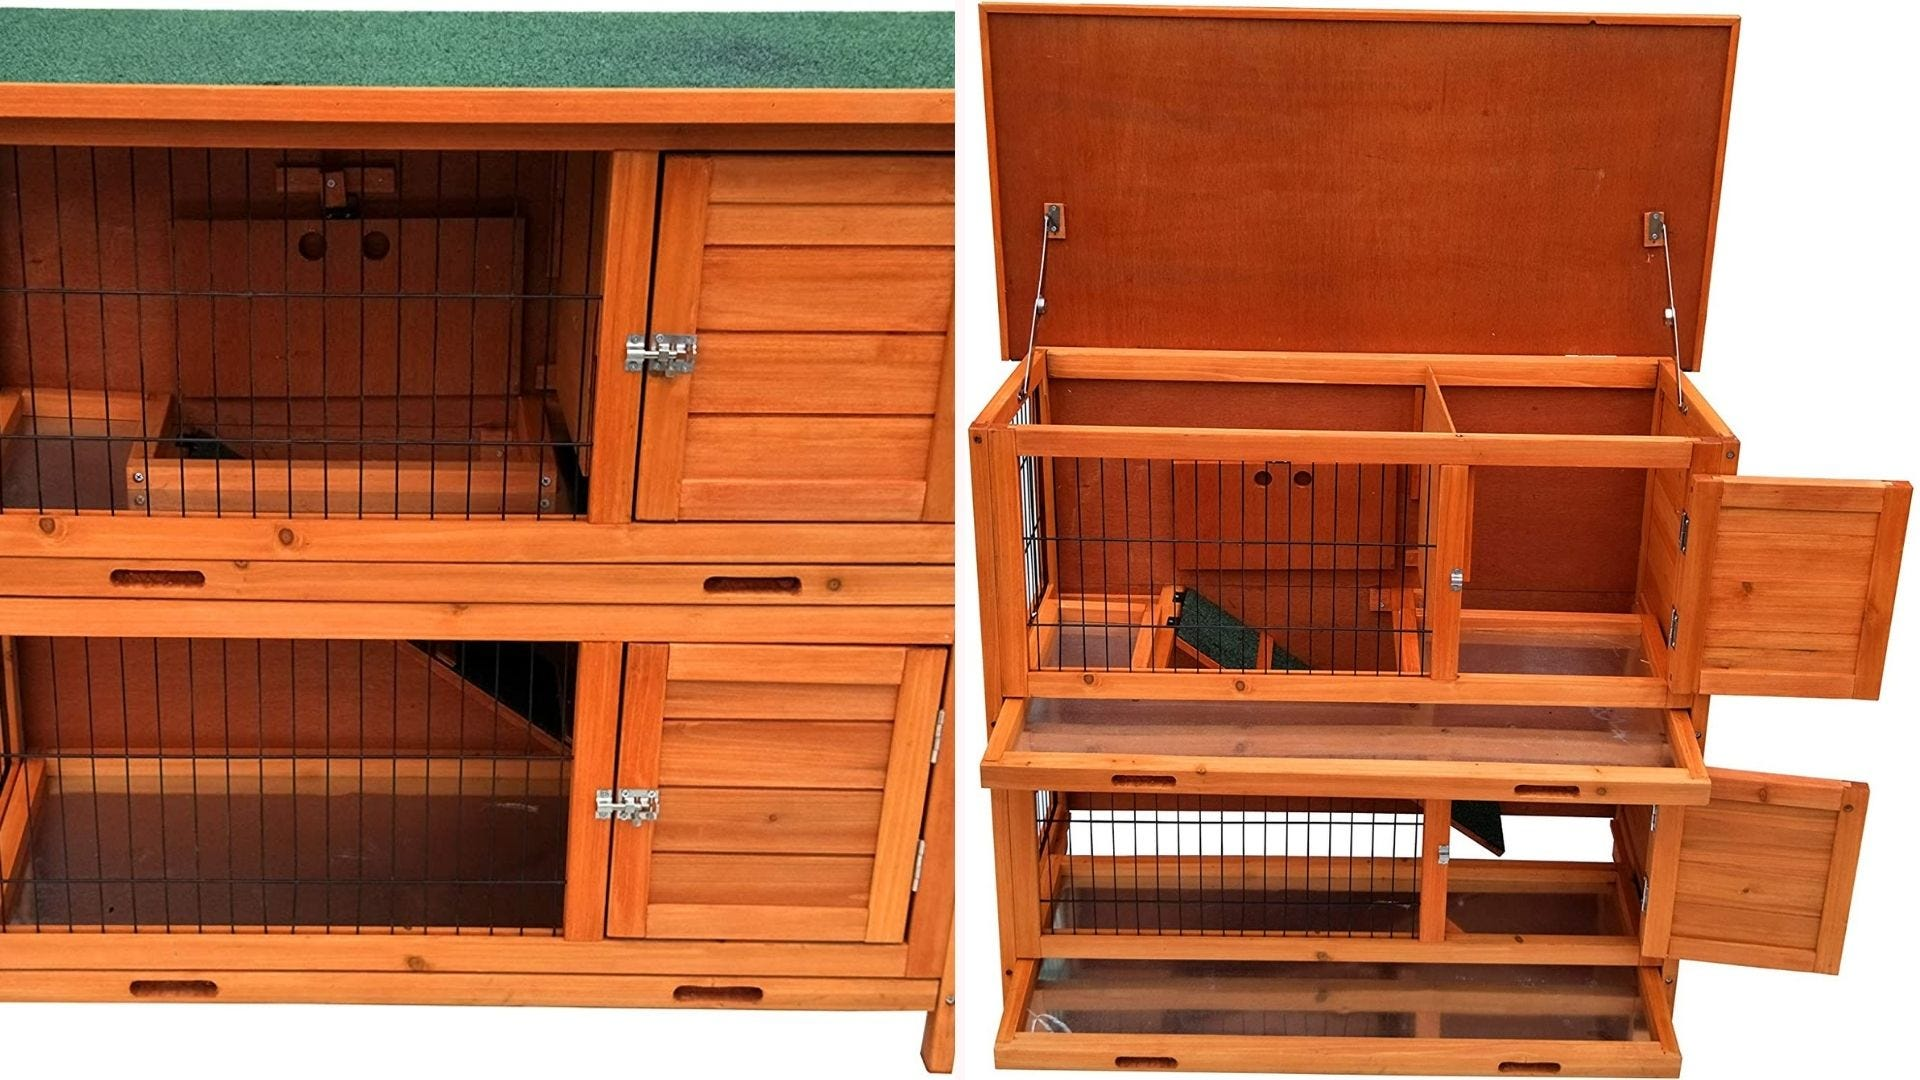 A two-story rabbit hutch.